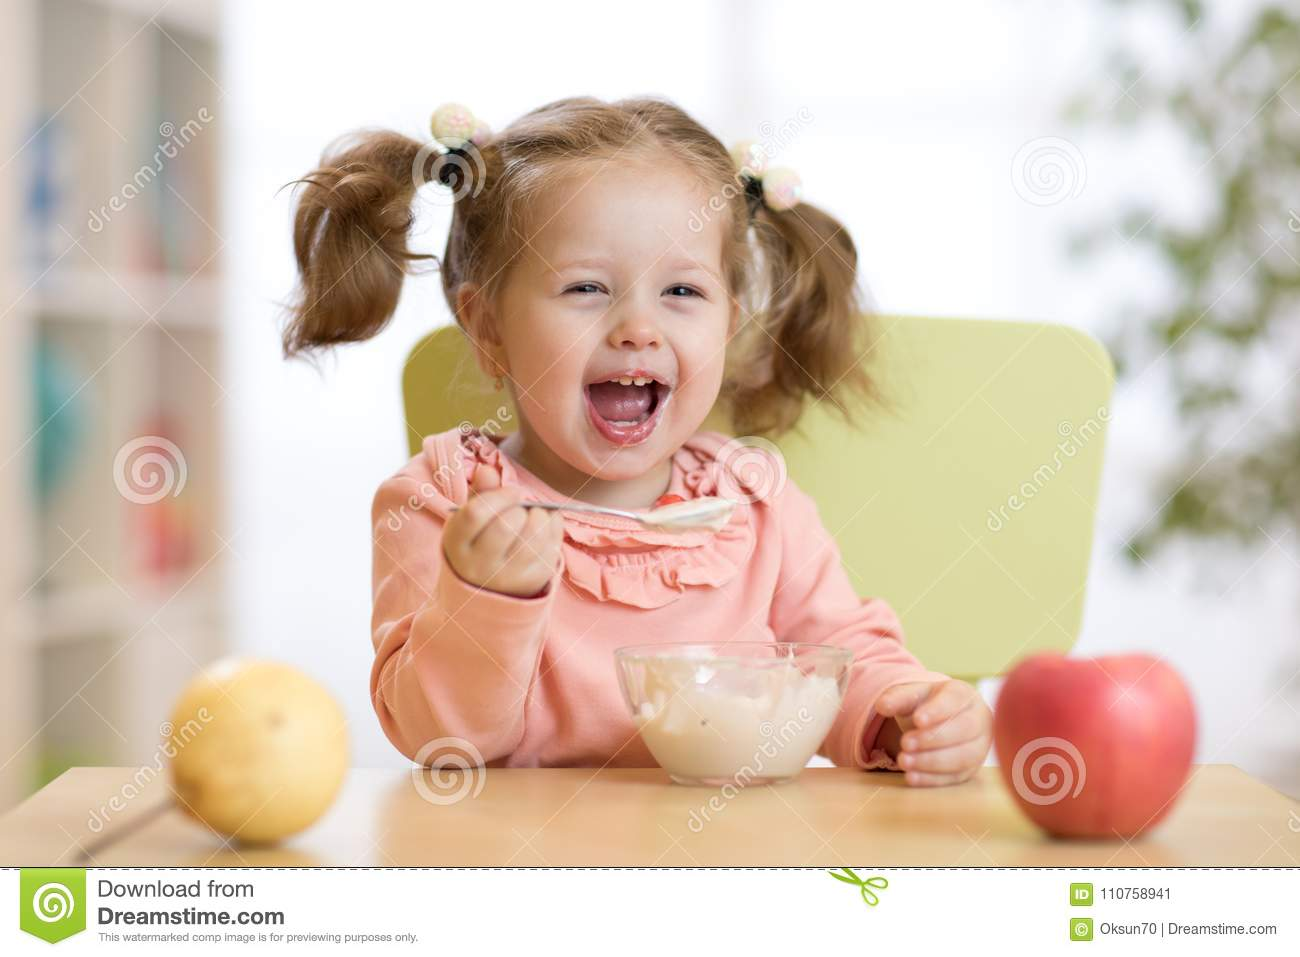 Cheerful baby child eating food itself with a spoon